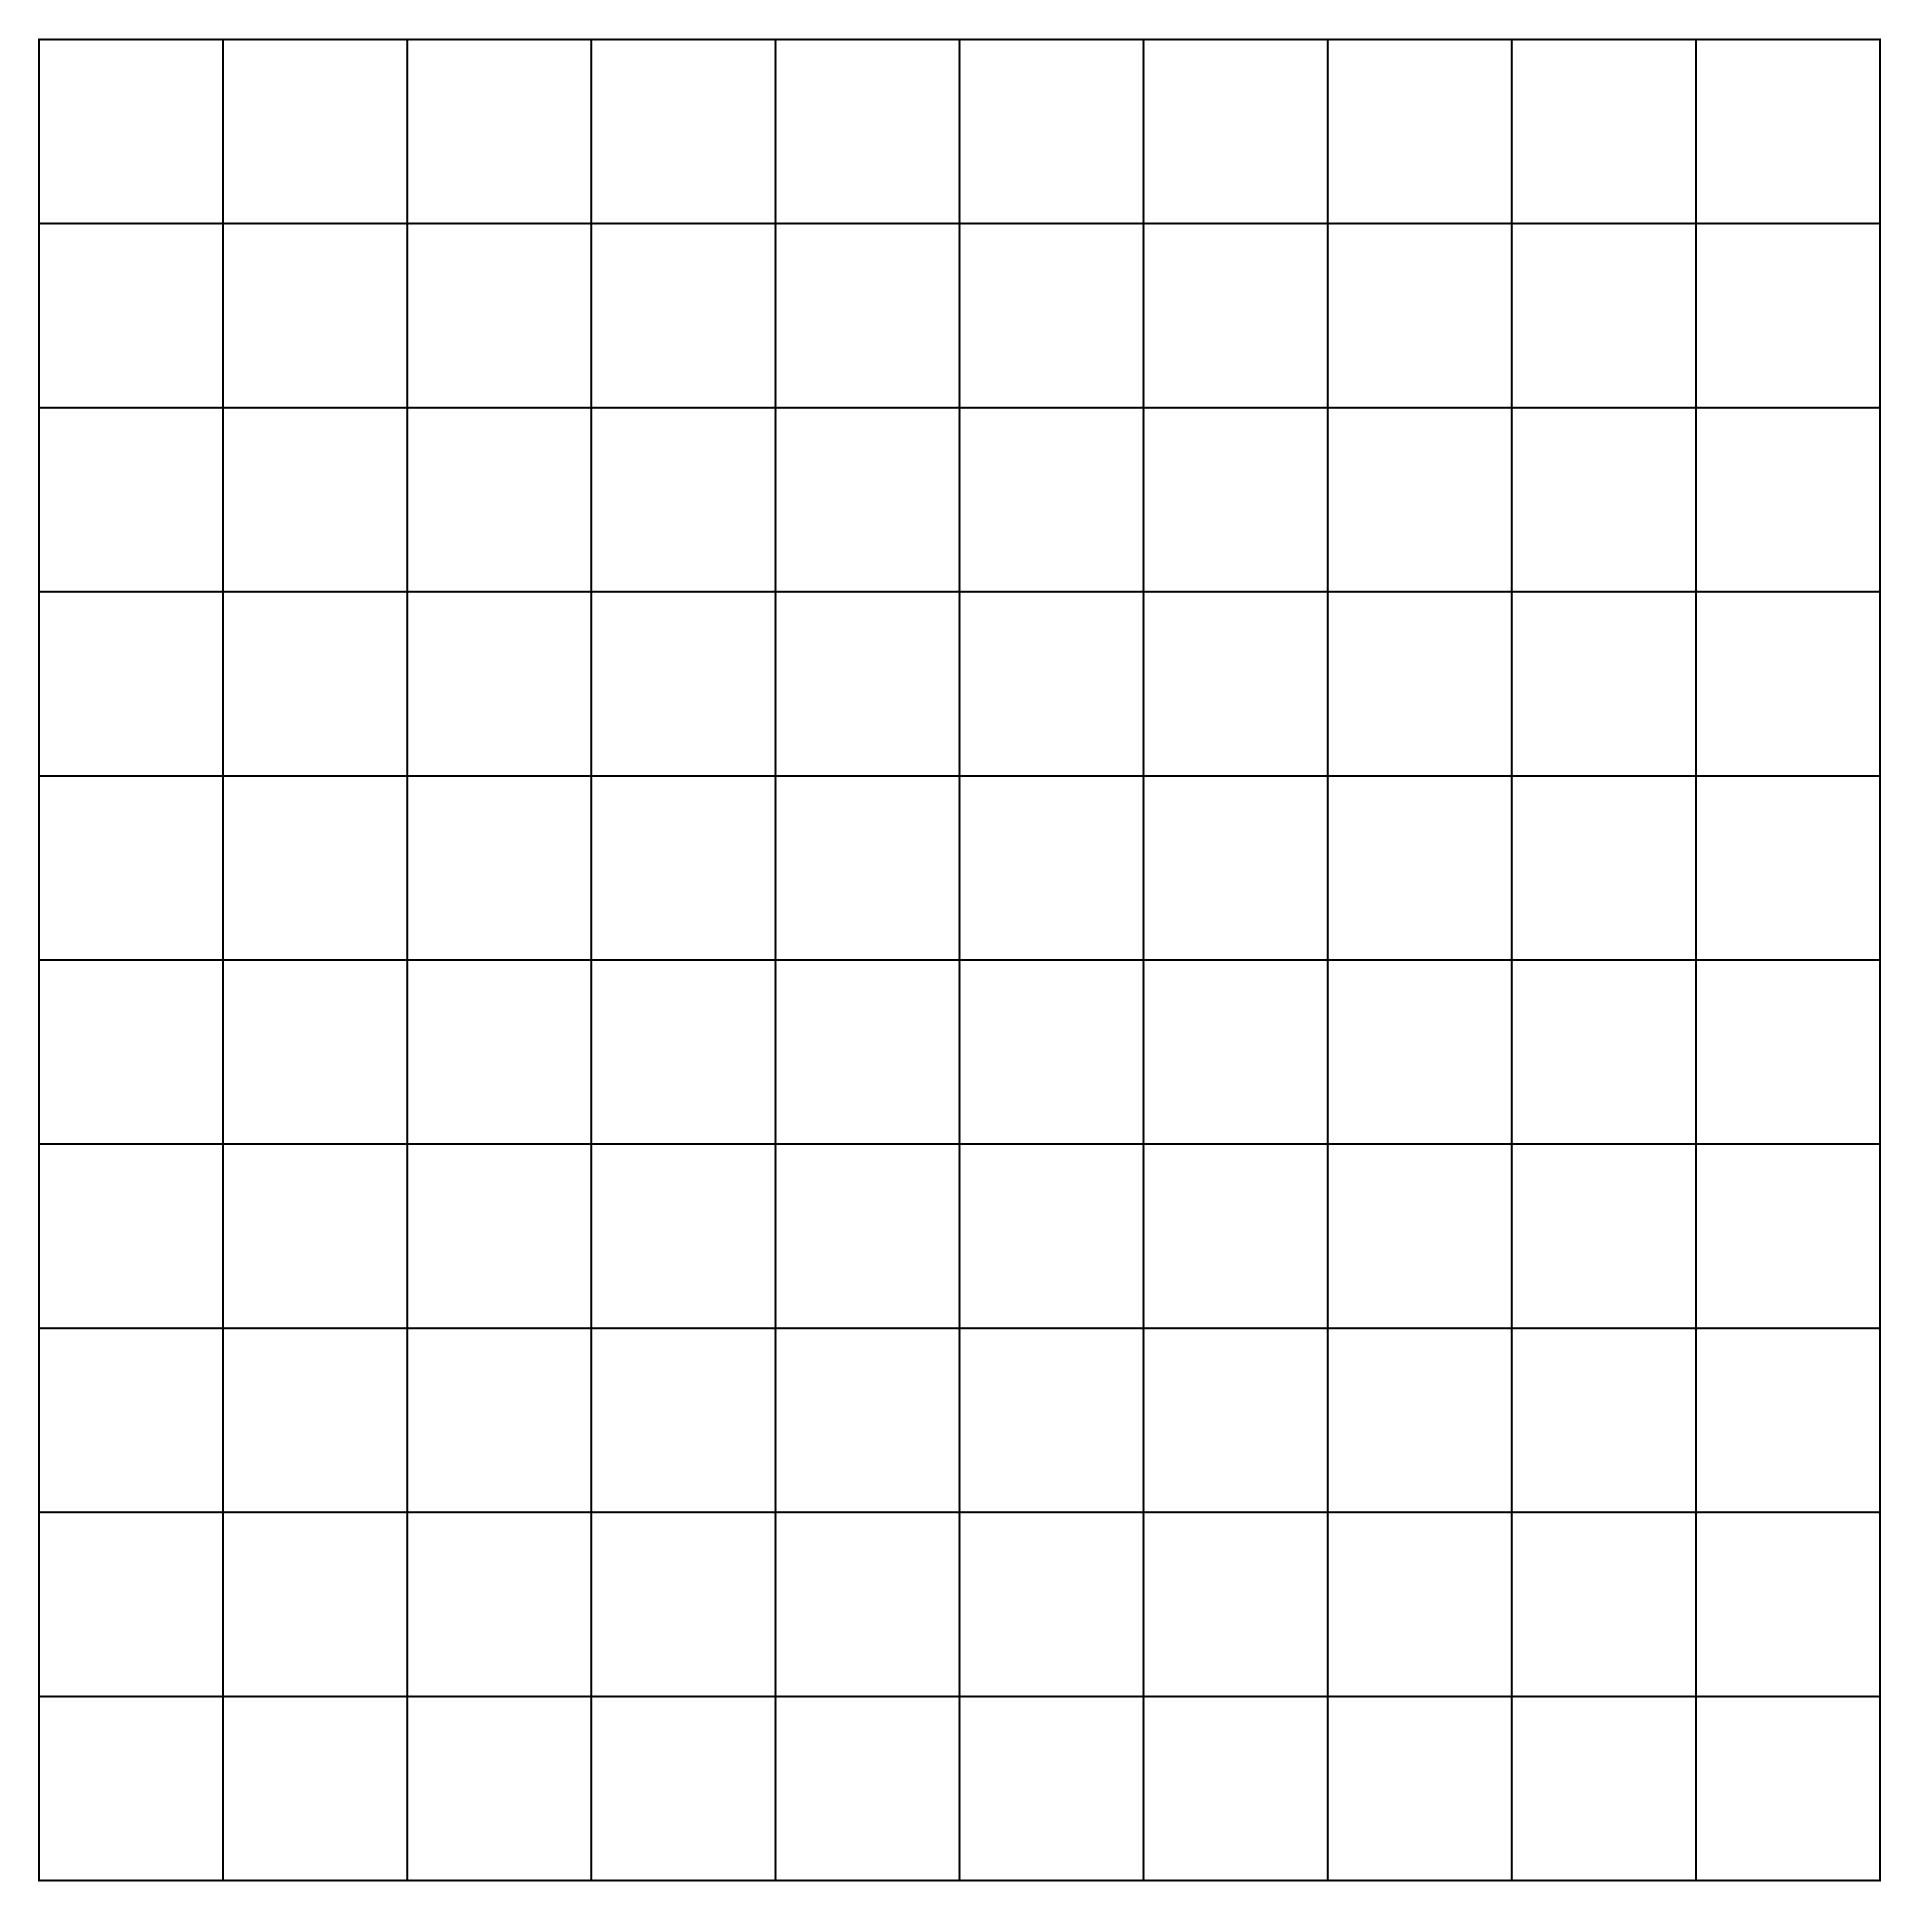 Worksheet Printable Blank 10 Frames